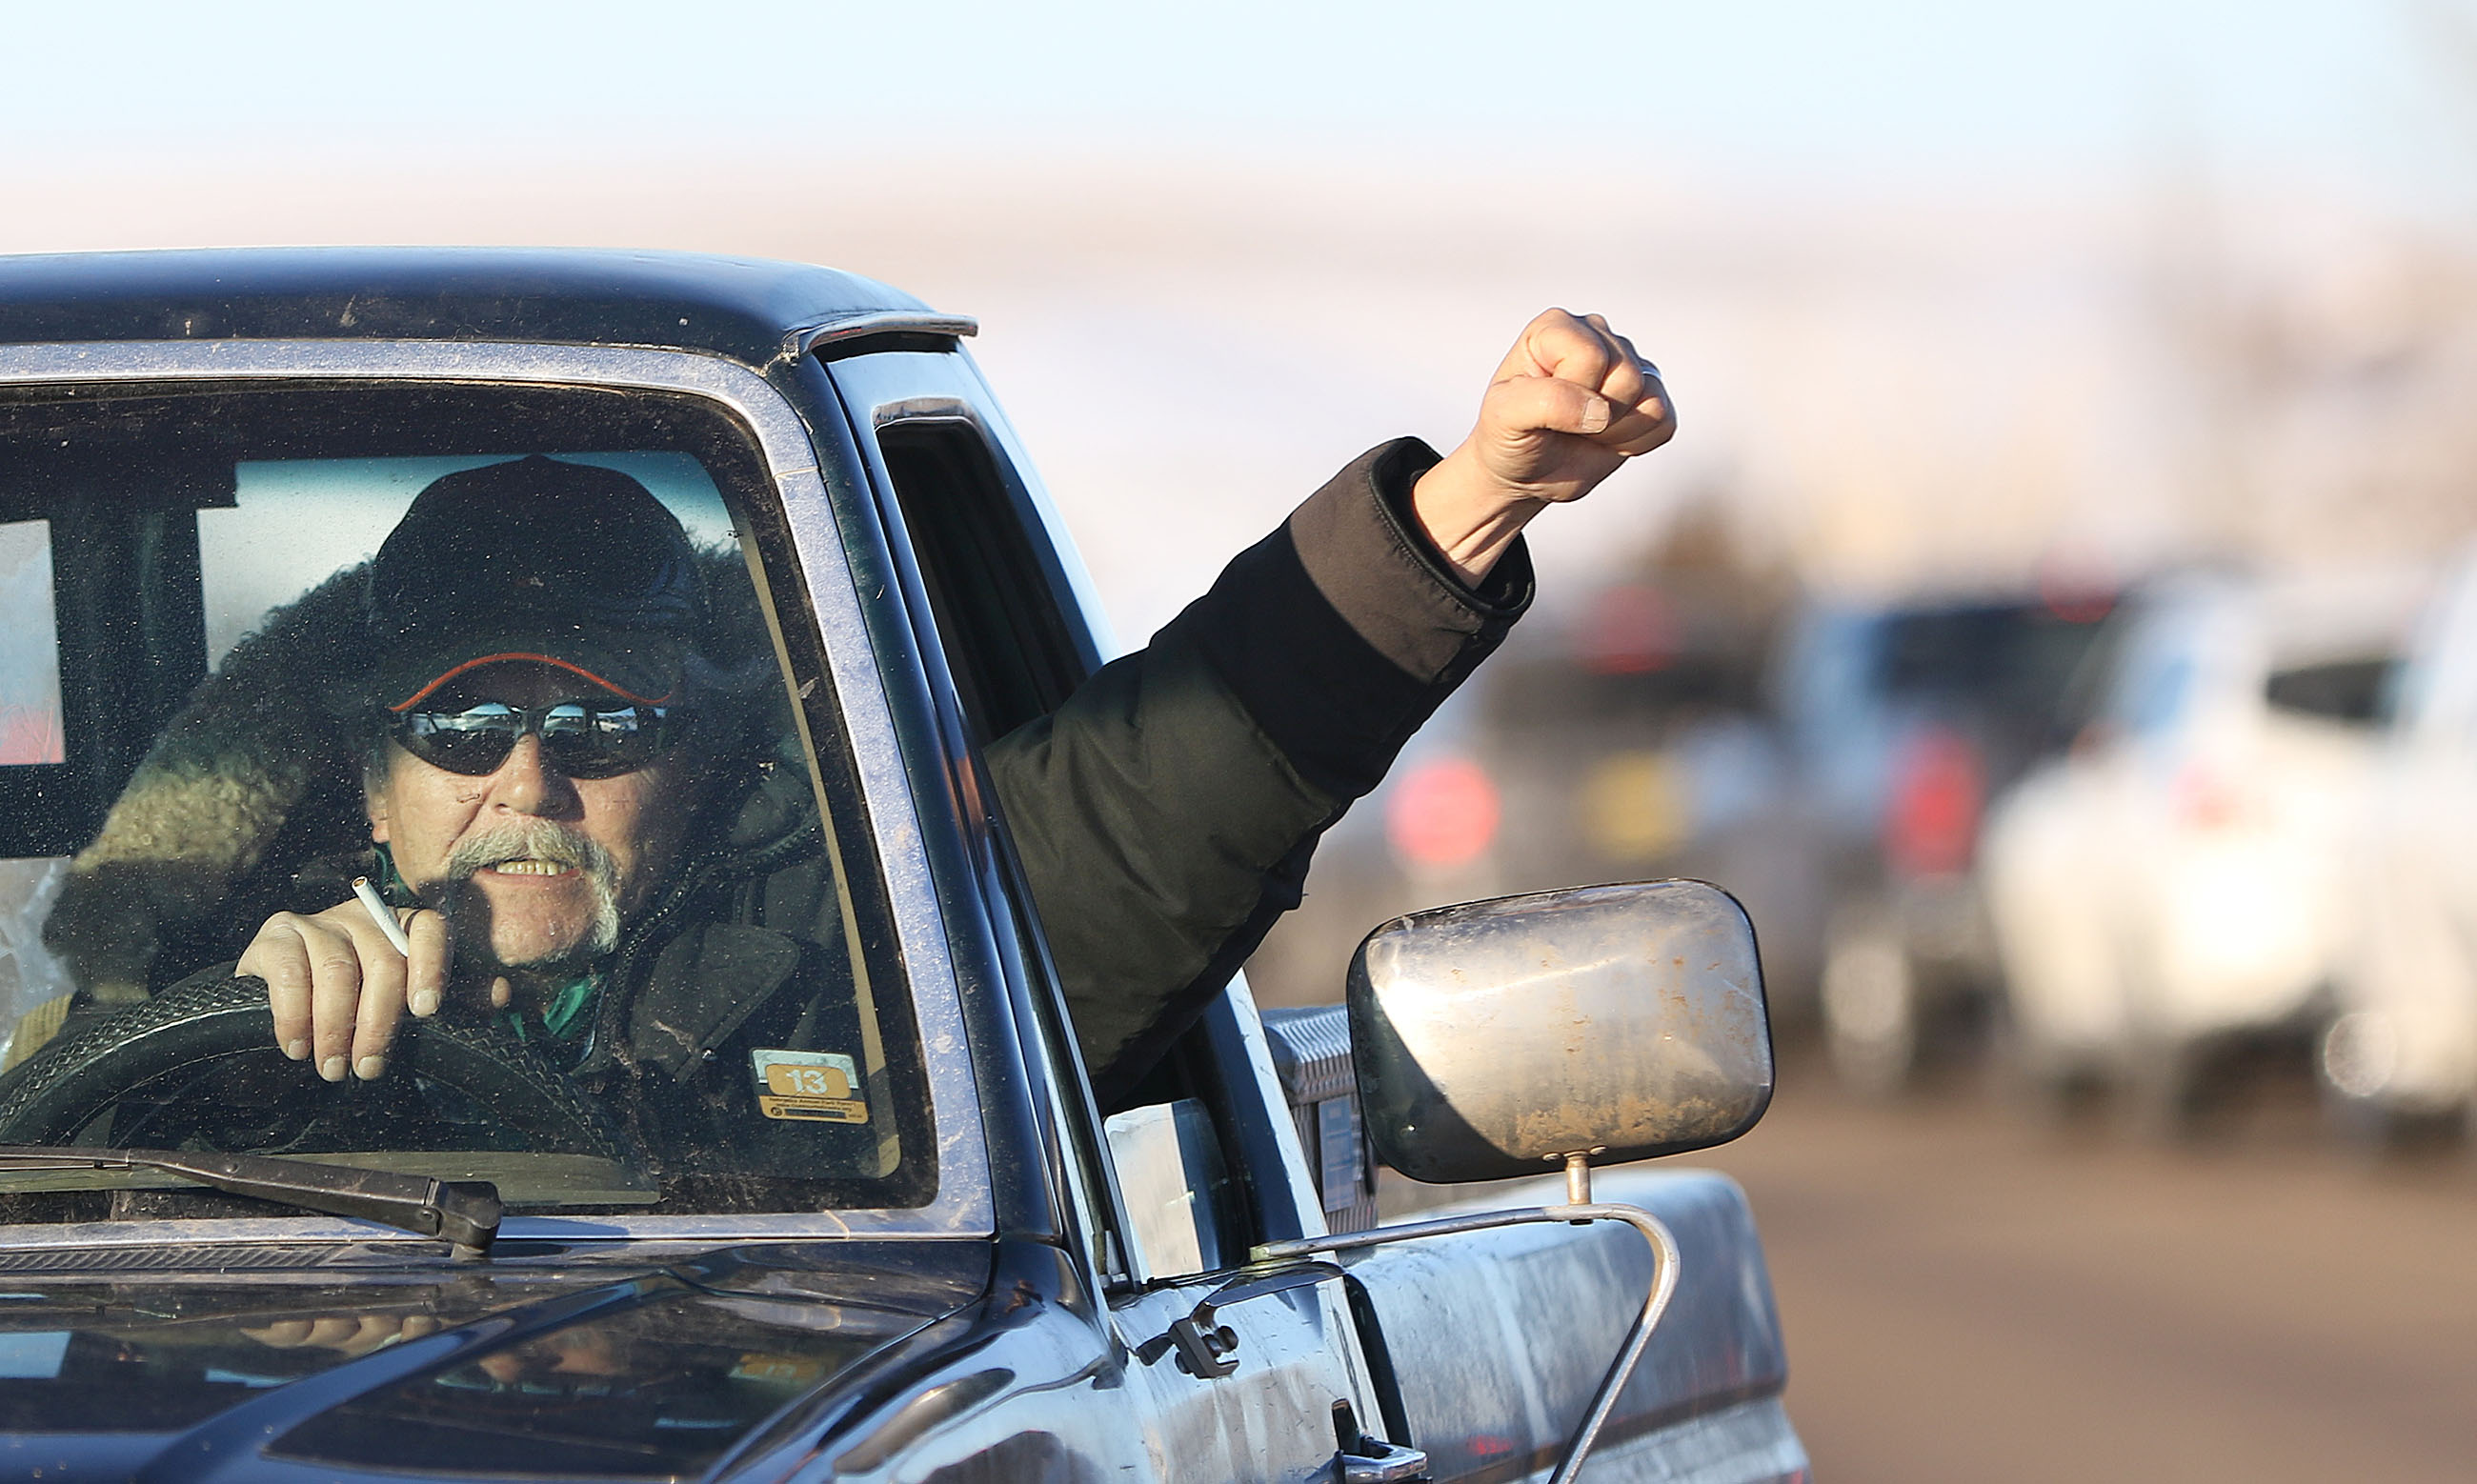 <p>The veterans hadn't been on the scene at Standing Rock for long when the U.S. Army Corps of Engineers announced it was halting the pipeline project to study alternative routes that would take it farther from the reservation's water supply. One protester celebrated with a raised fist.</p>